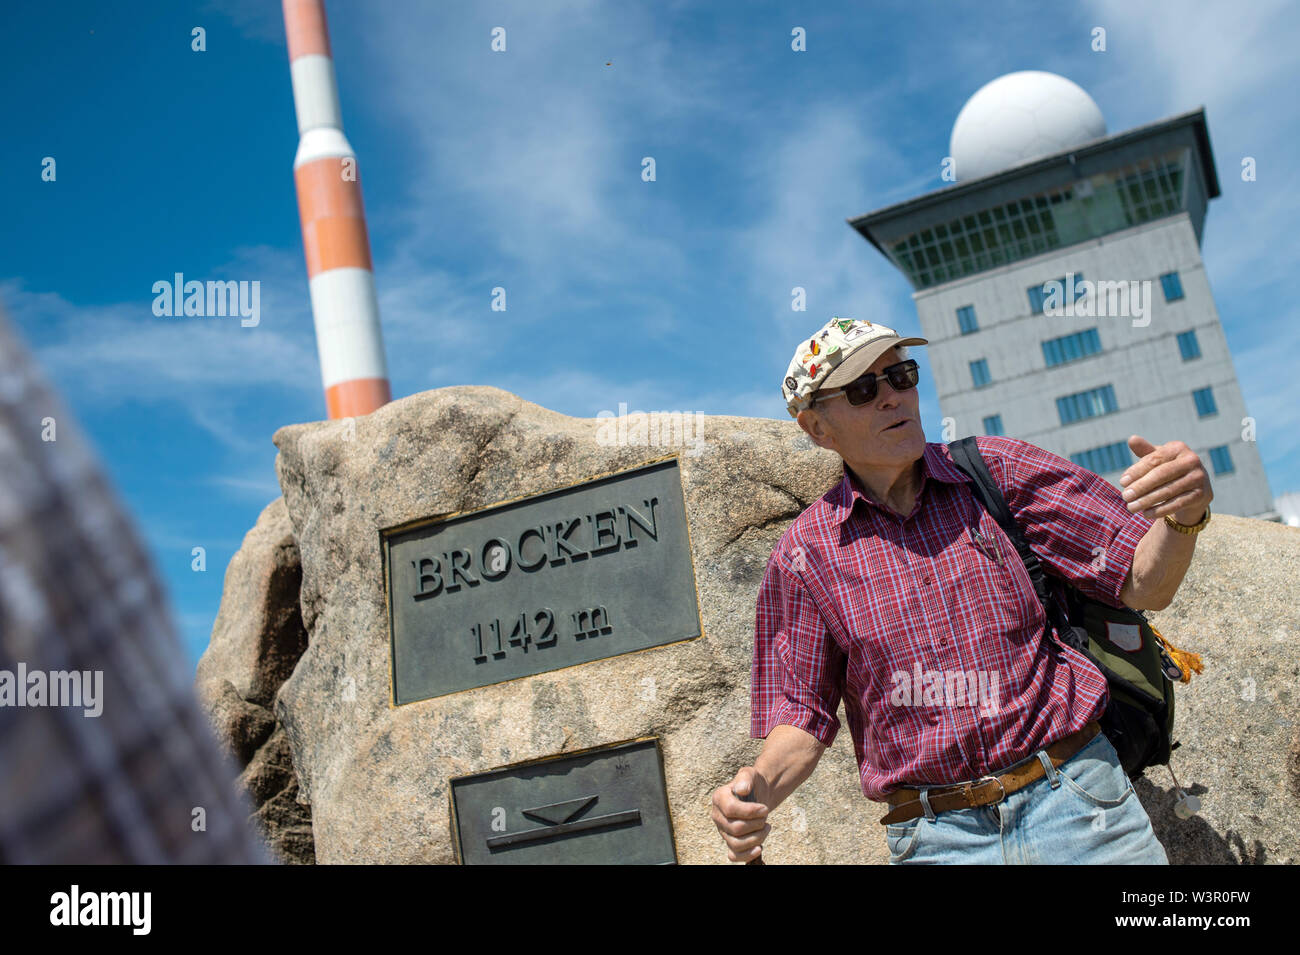 25 June 2019, Saxony-Anhalt, Wernigerode: The record hiker Benno Schmidt, who became famous as Brocken-Benno, stands on the Brocken. The summit of the Harz Mountains was opened to the public on 03 December 1989. Benno Schmidt is ambassador of the Green Belt, near which the Brocken lies. Before the fall of communism, the Brocken was a military restricted area. Photo: Klaus-Dietmar Gabbert/dpa-Zentralbild/ZB - Stock Image